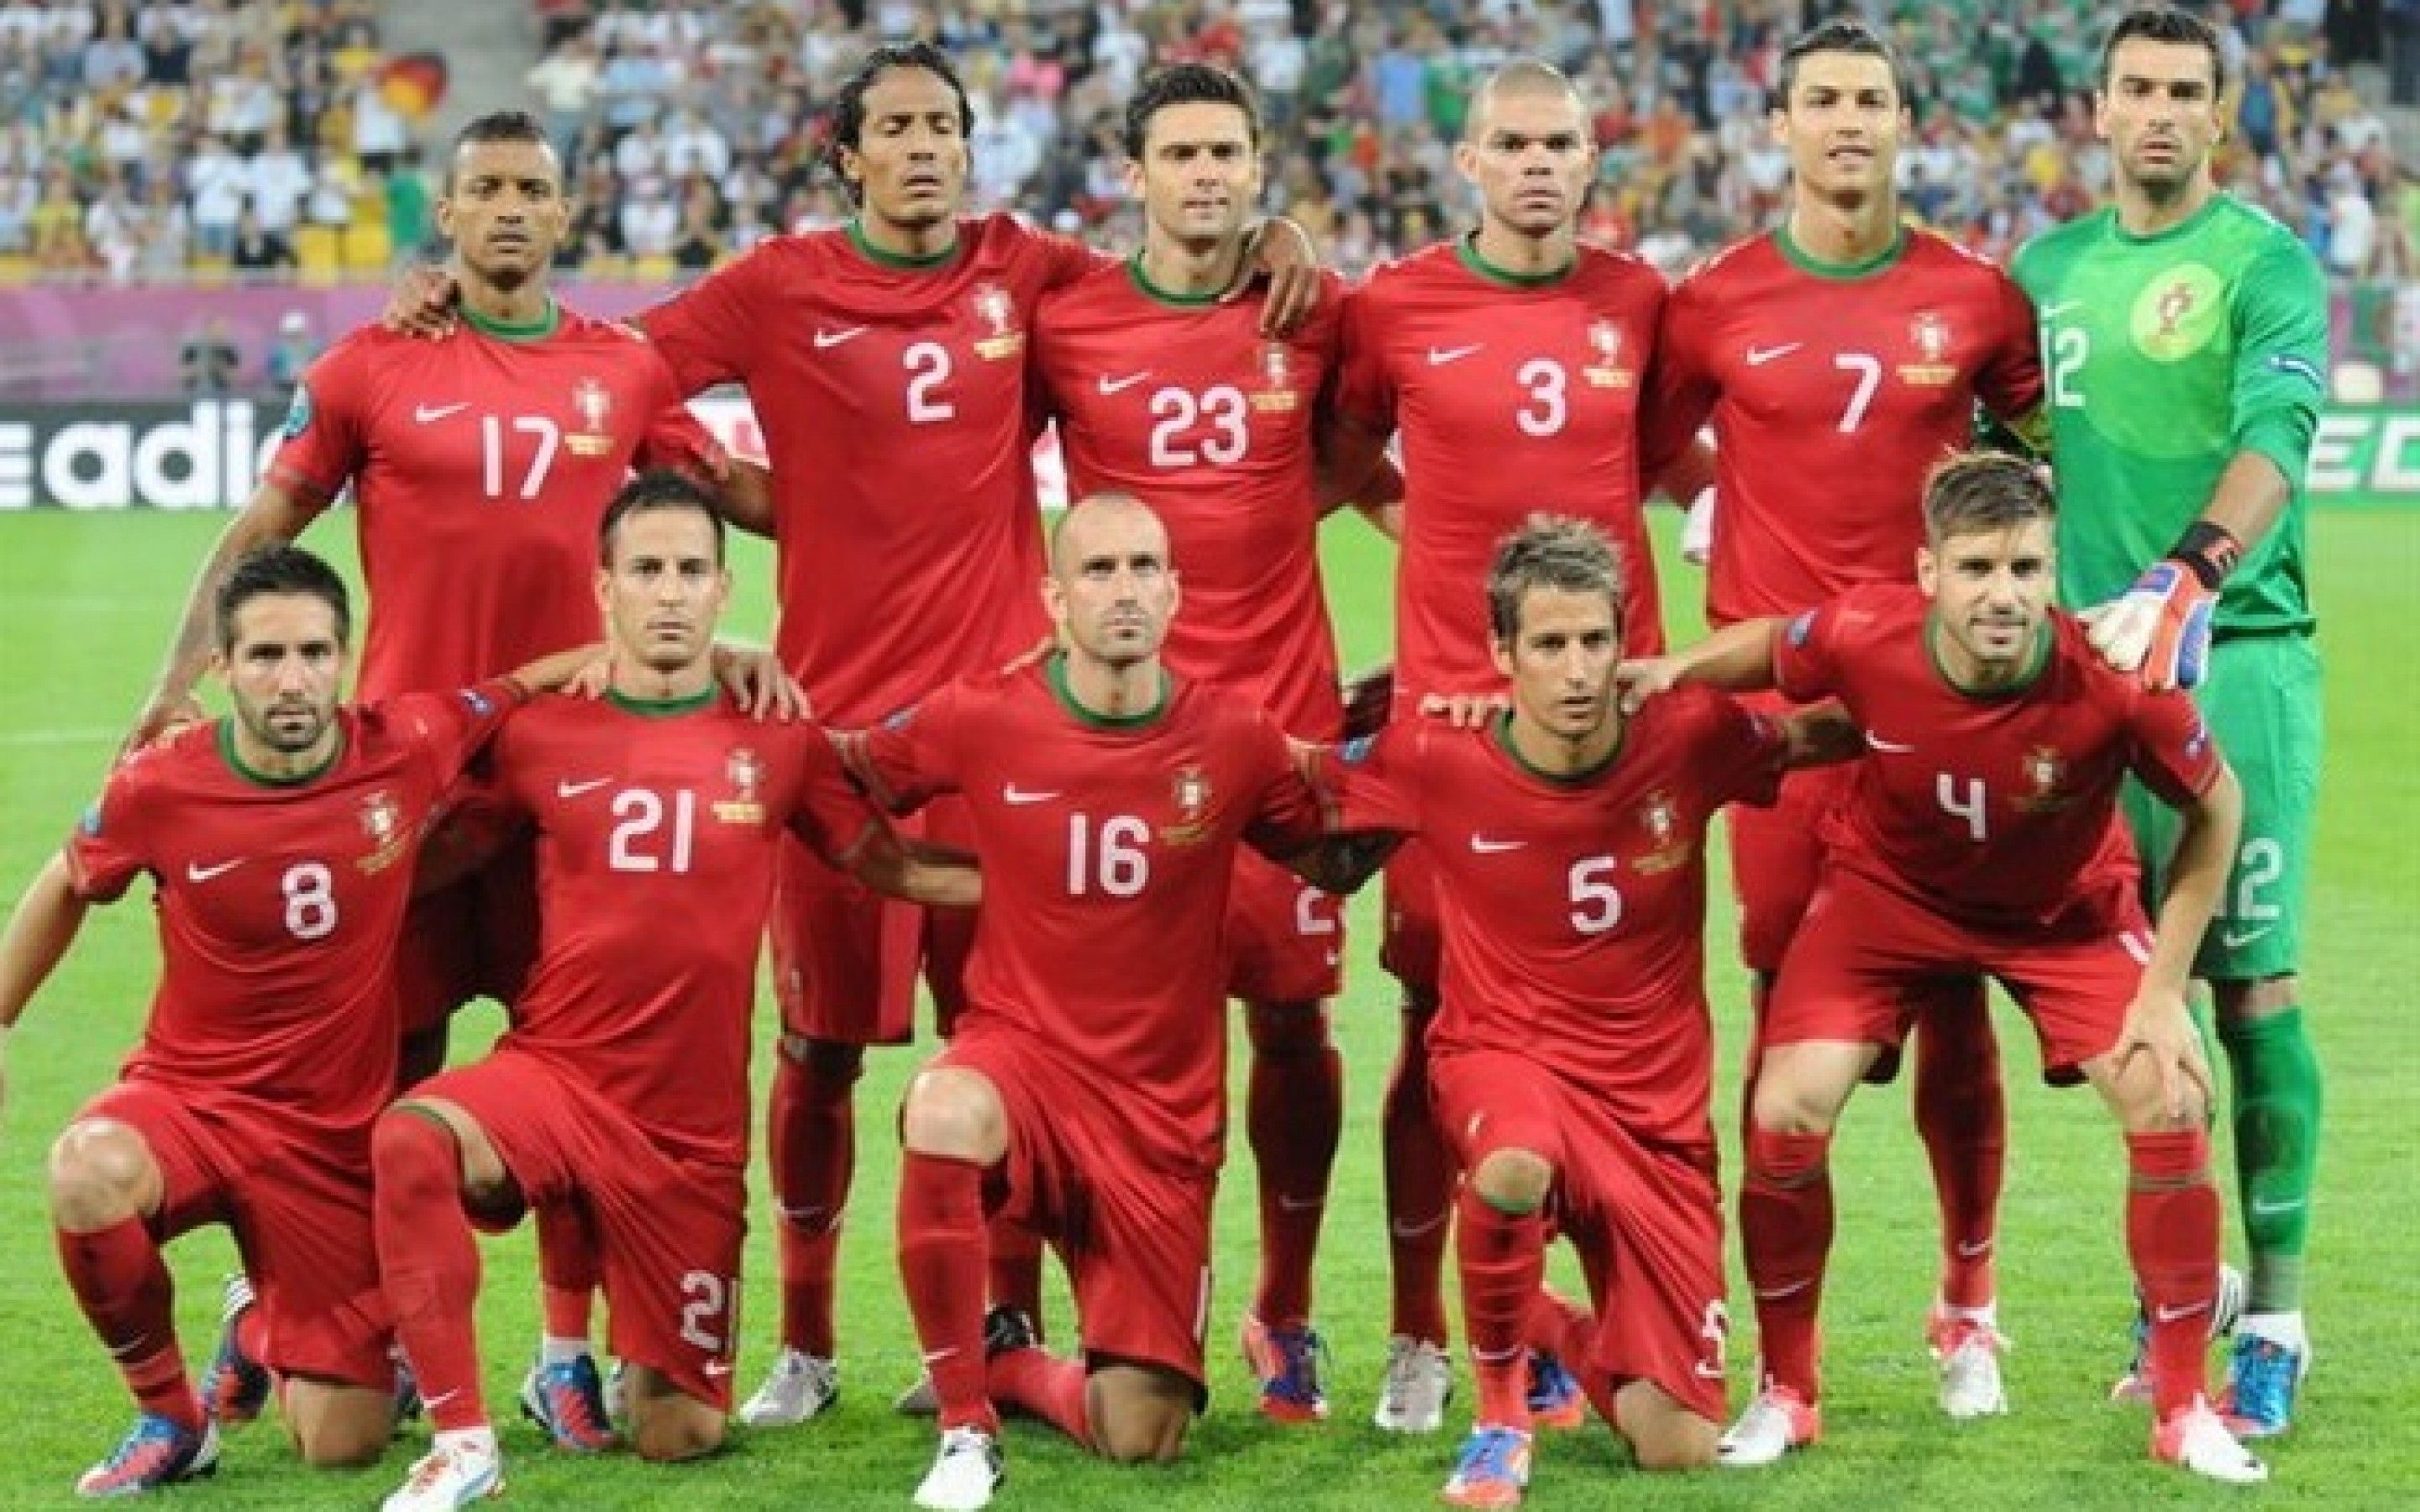 Portugal National Football Team Wallpapers Wallpapers - All Superior Portugal National Football ...